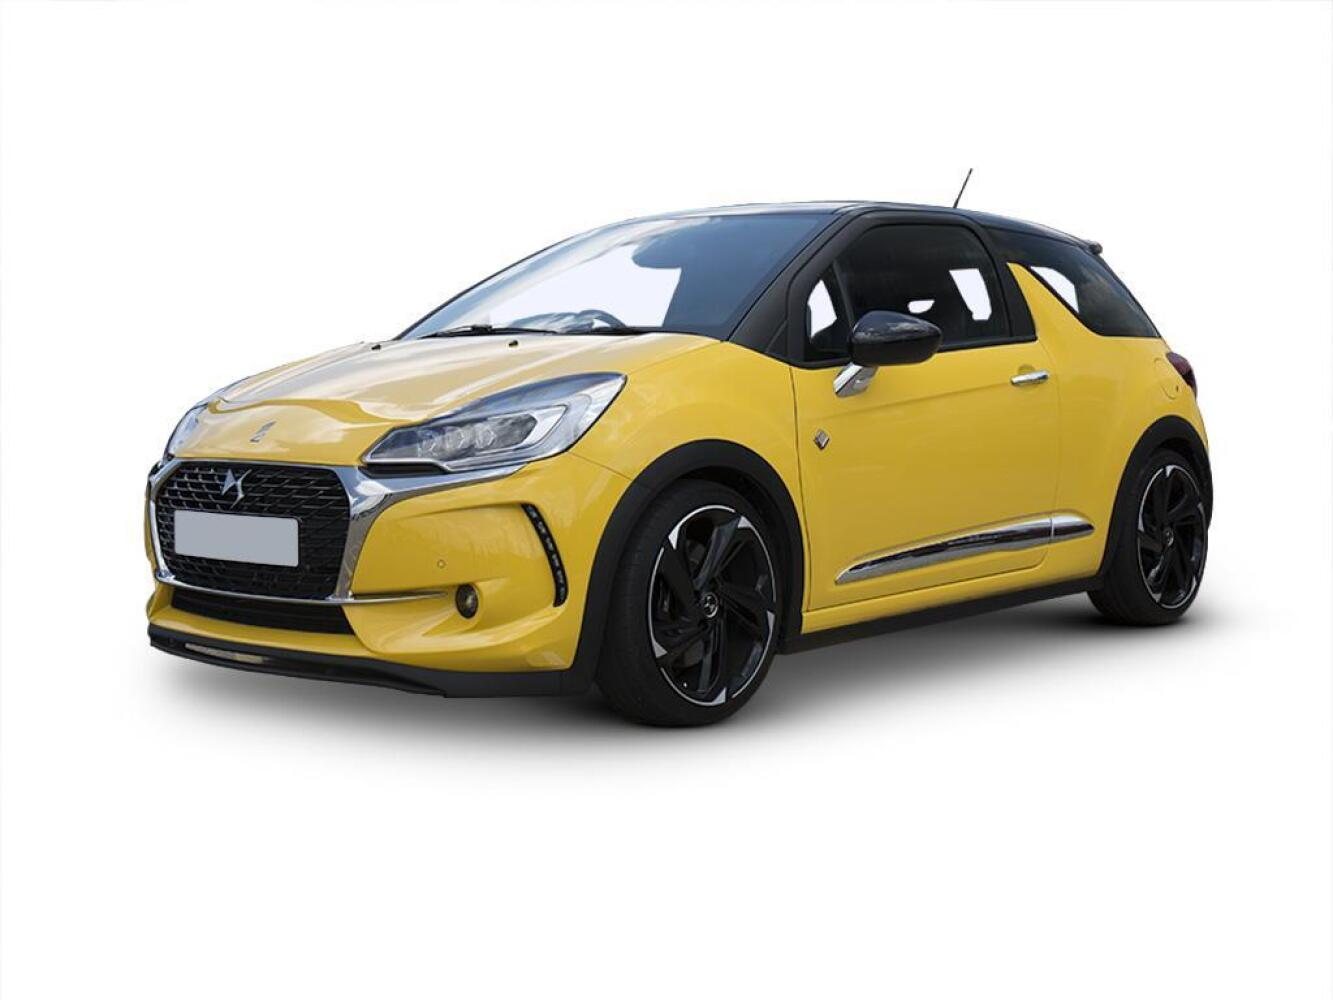 new ds 3 1 2 puretech cafe racer 3dr petrol hatchback for sale bristol street. Black Bedroom Furniture Sets. Home Design Ideas